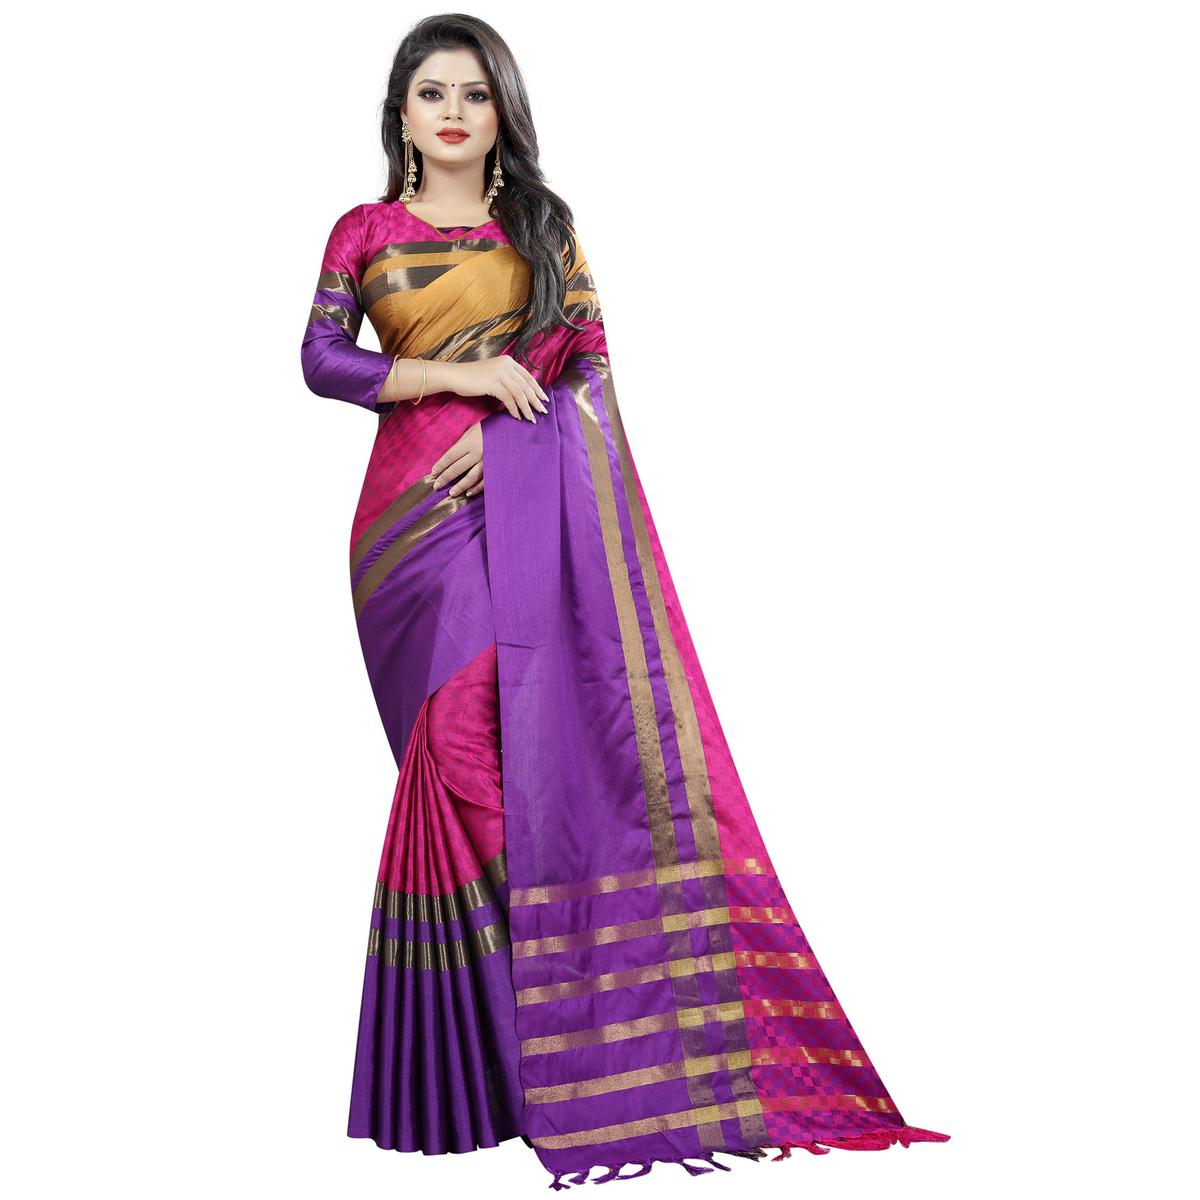 Groovy Pink Colored Festive Wear Cotton Saree